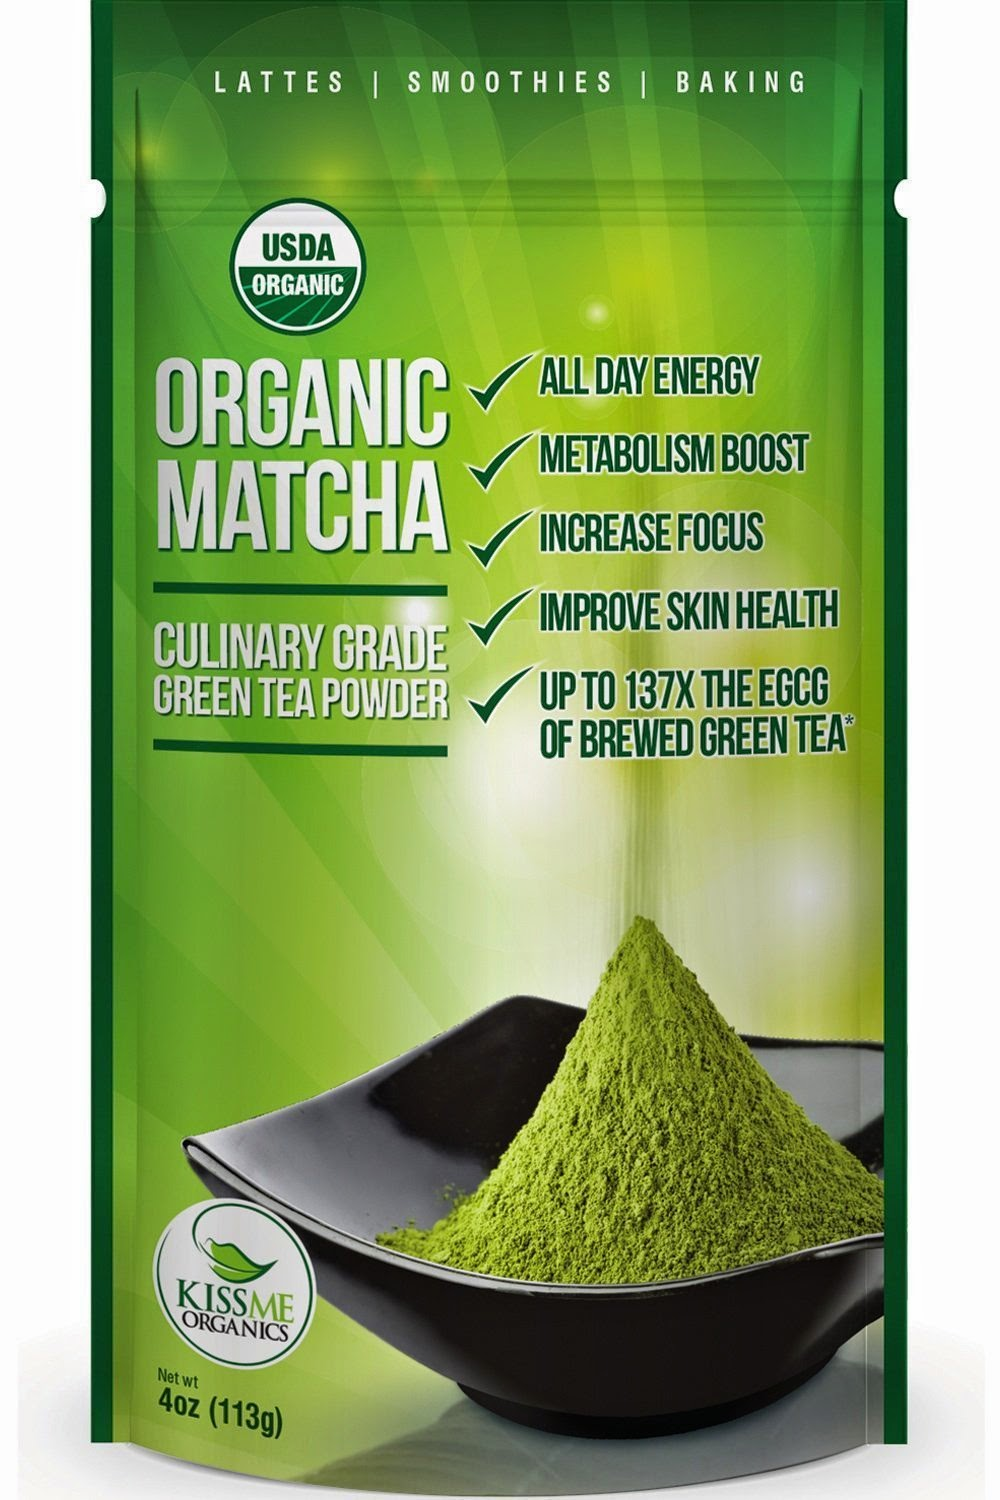 http://www.amazon.co.uk/Matcha-Green-Tea-Powder-Antioxidant/dp/B00DDT116M